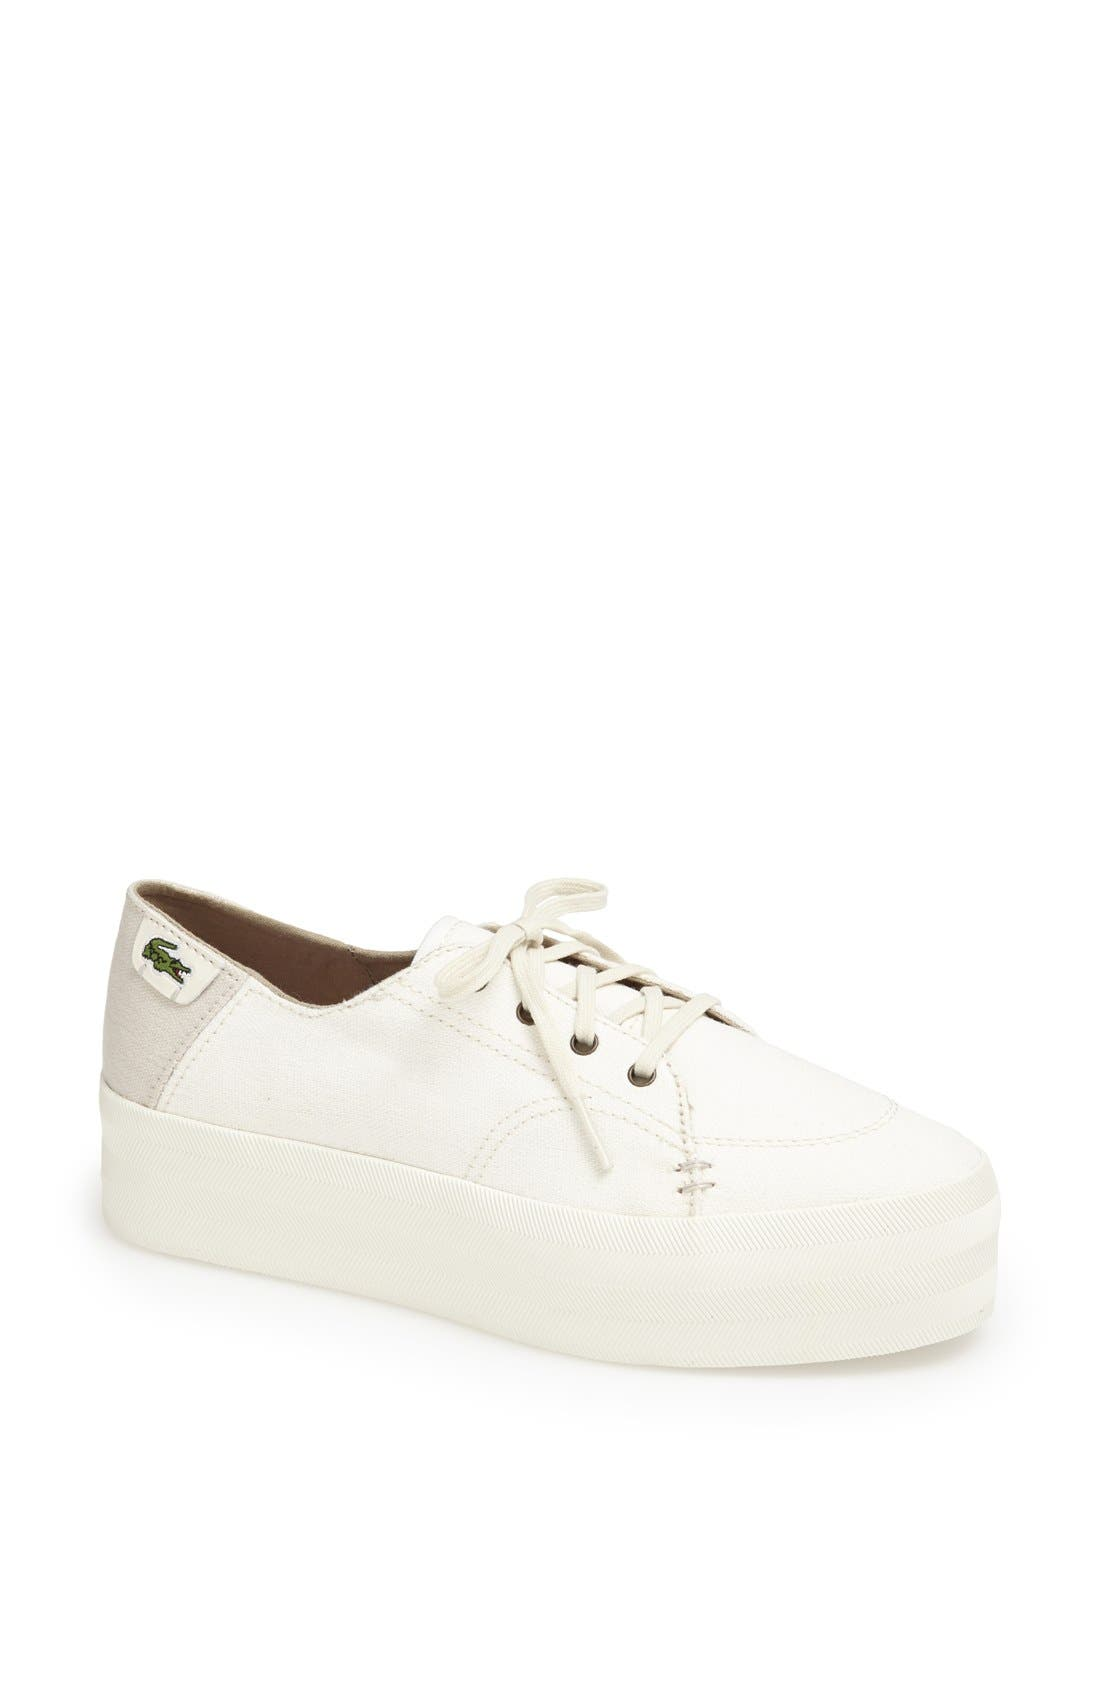 Alternate Image 1 Selected - Lacoste 'Kirton' Platform Sneaker (Women) (Online Exclusive)